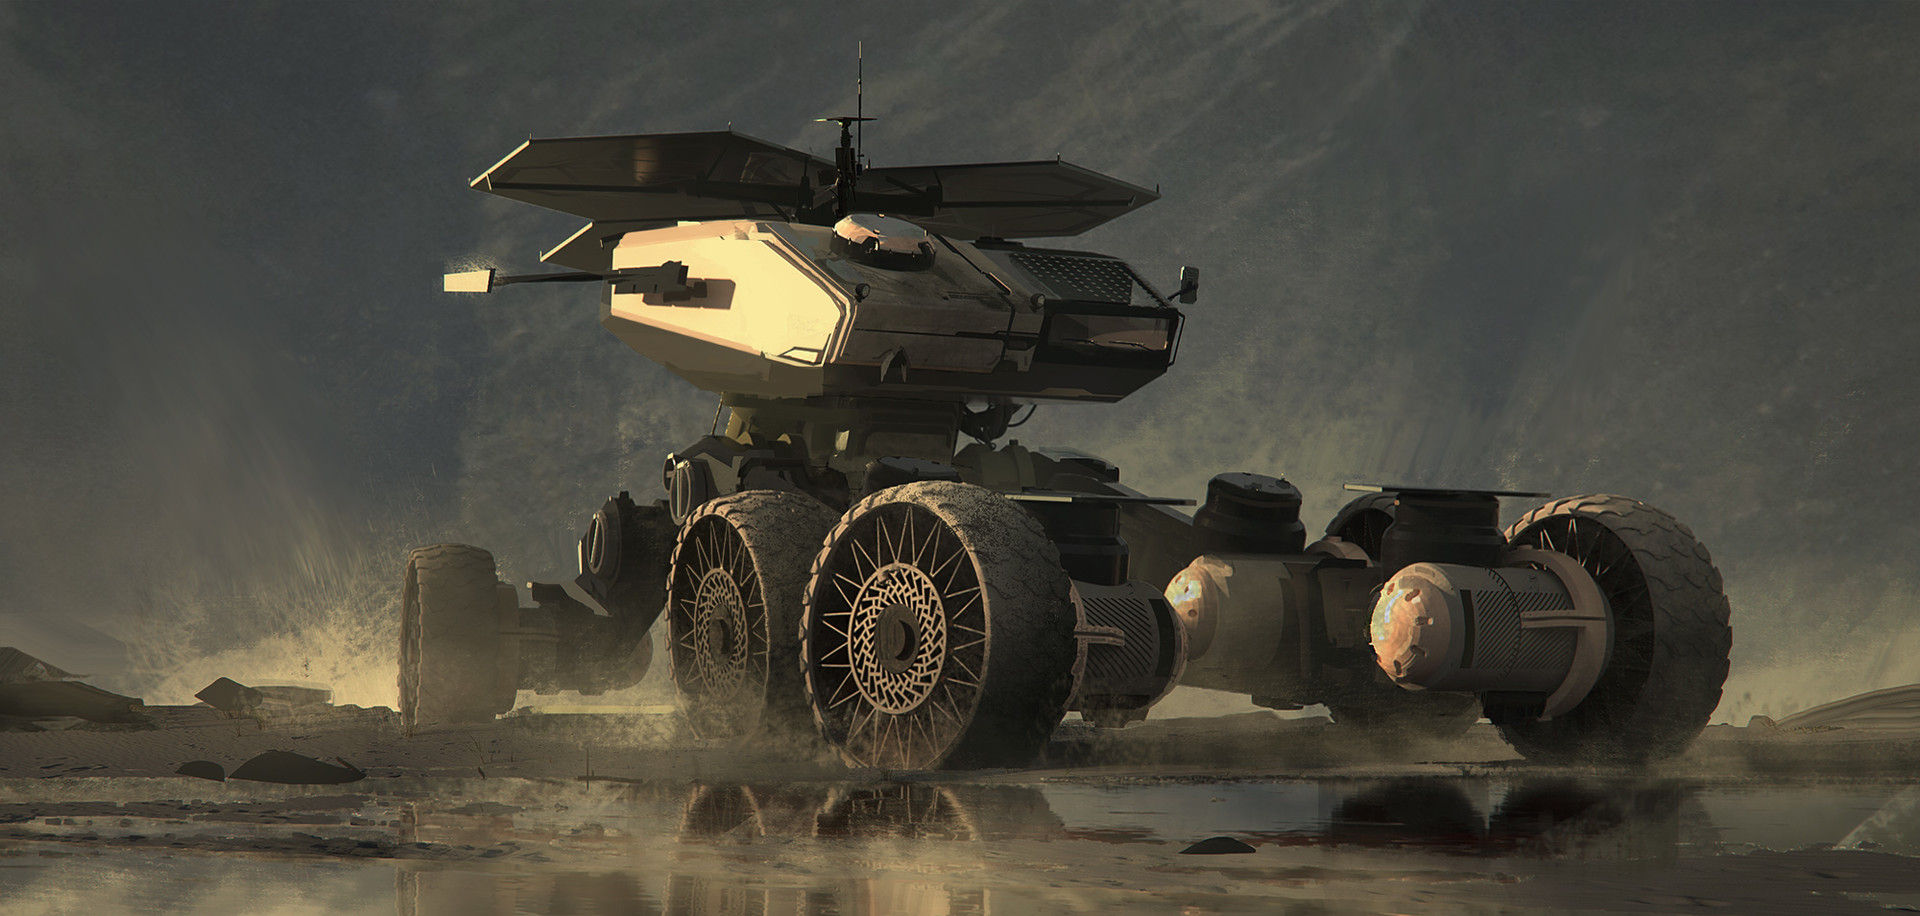 The Science Fiction Art of Christoph Stryczek